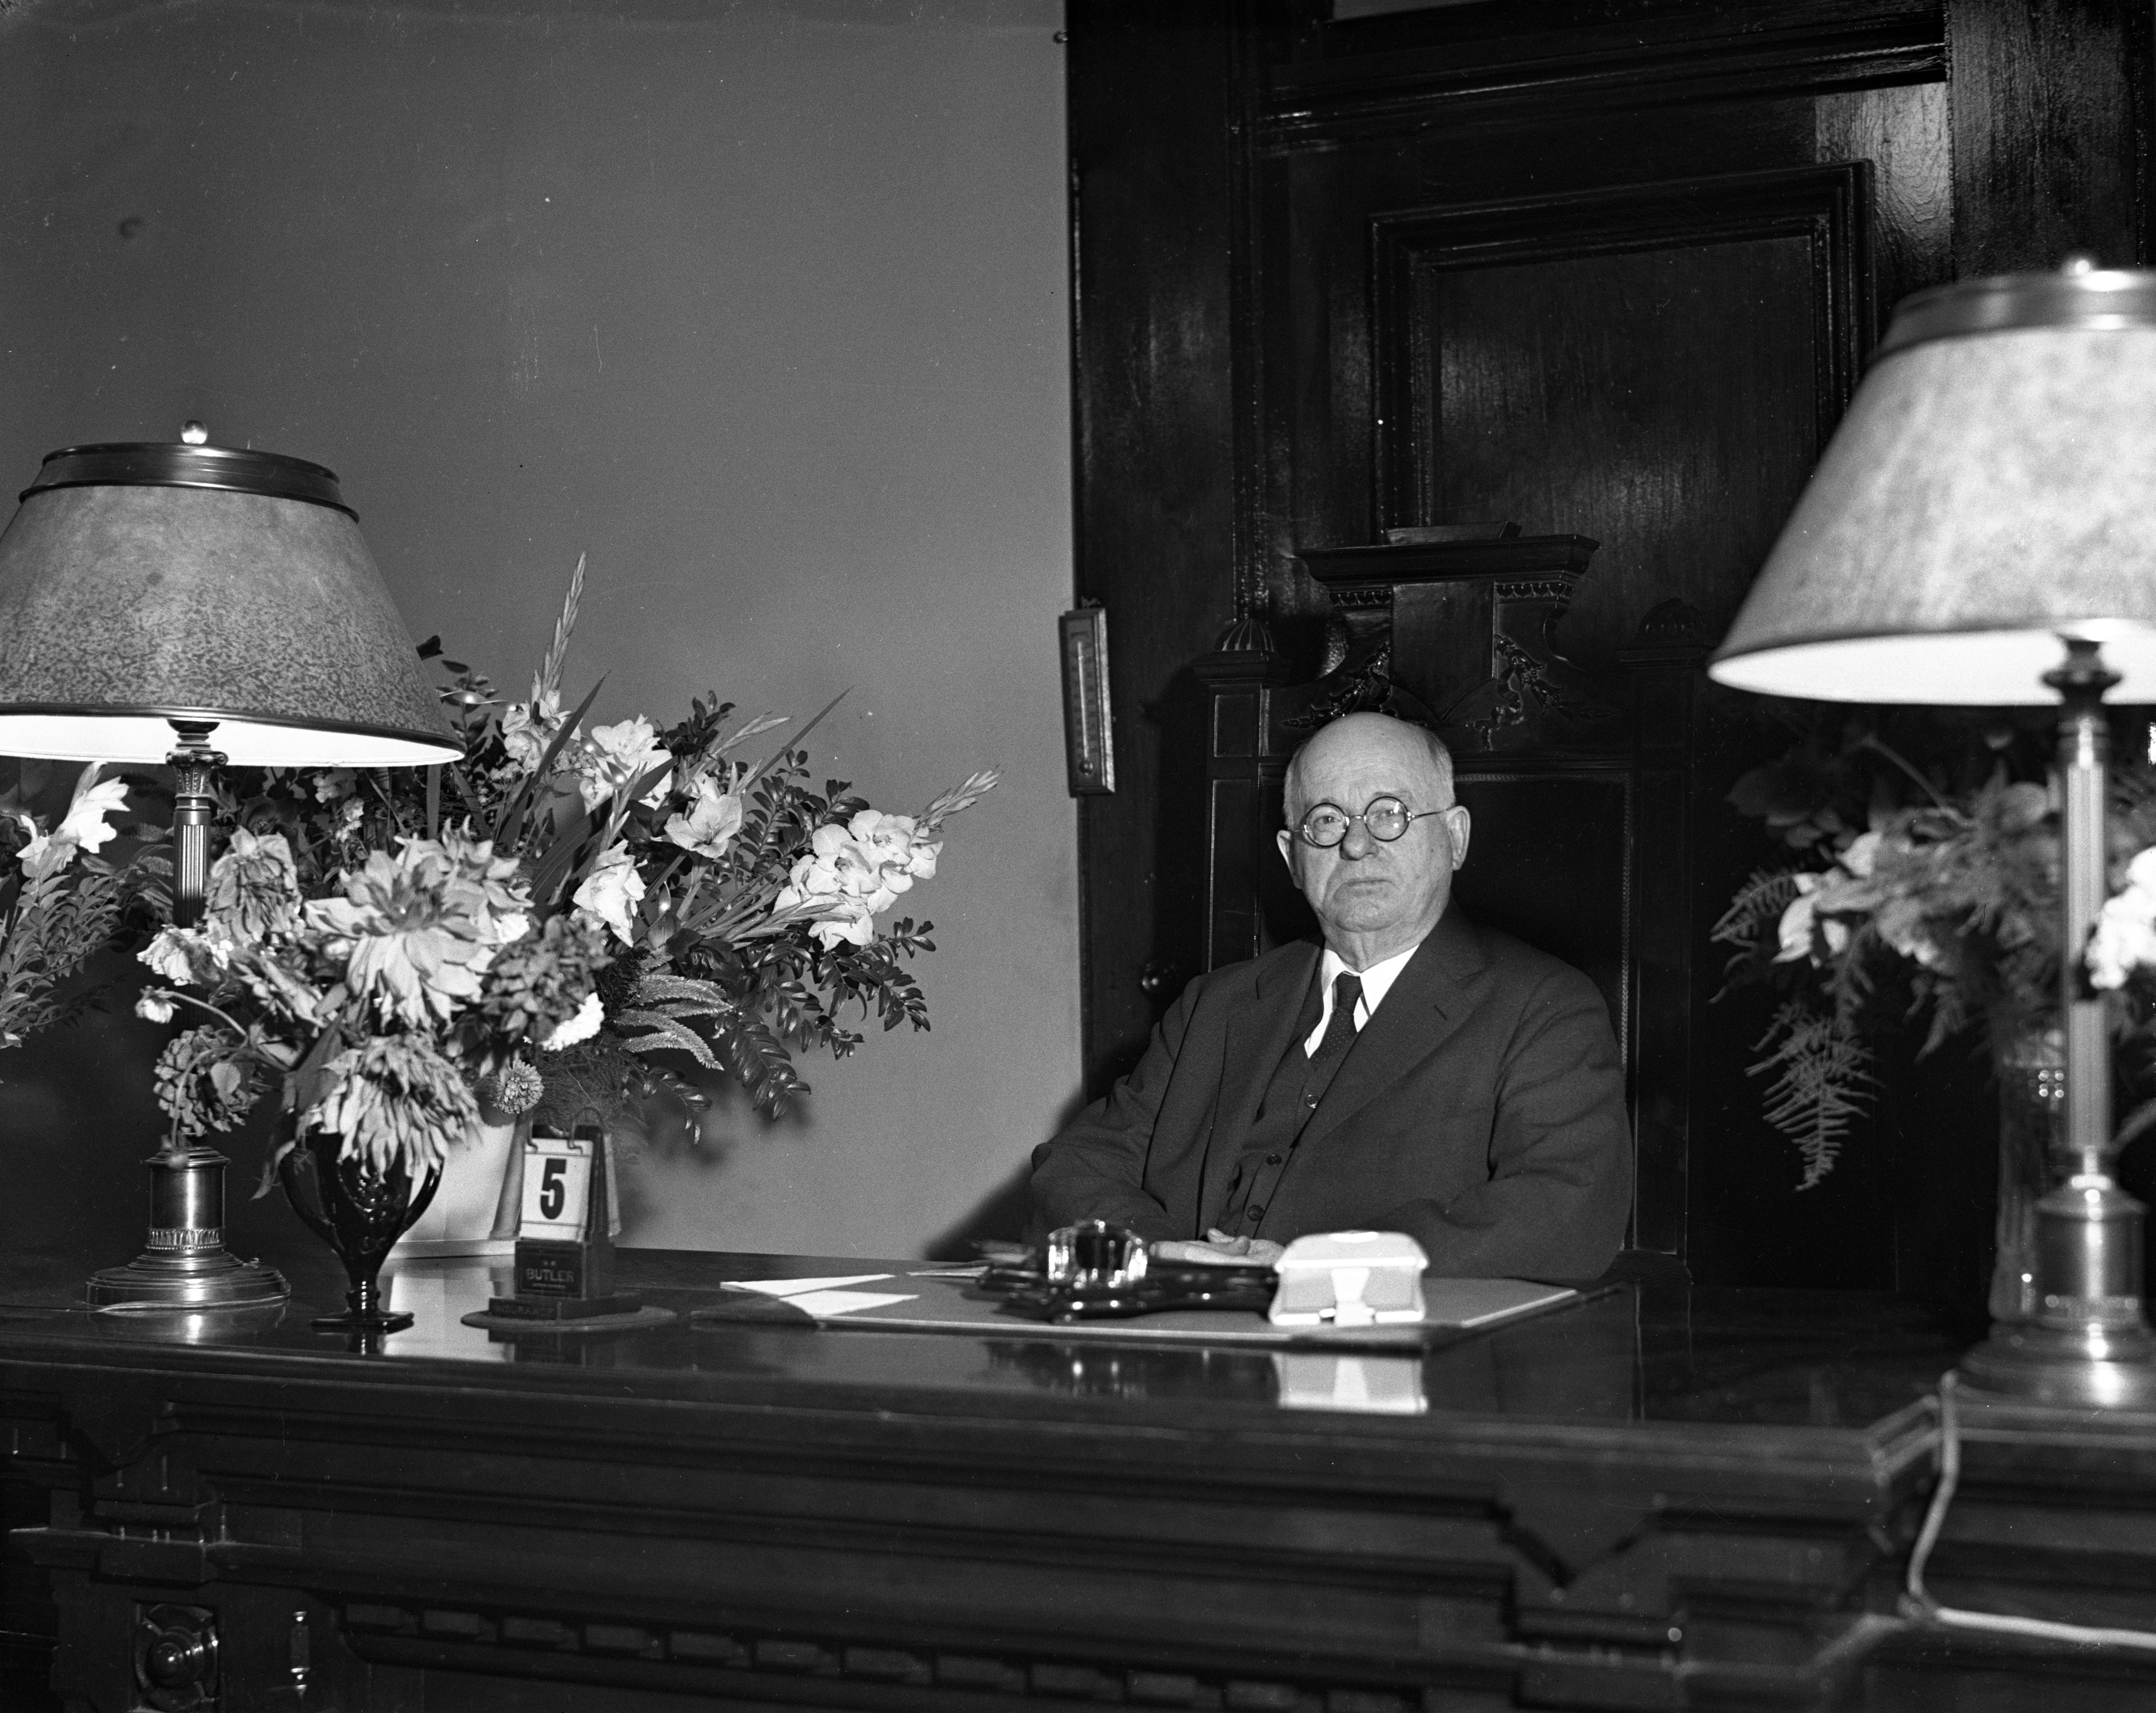 Judge George W. Sample returns to bench, October 1936 image